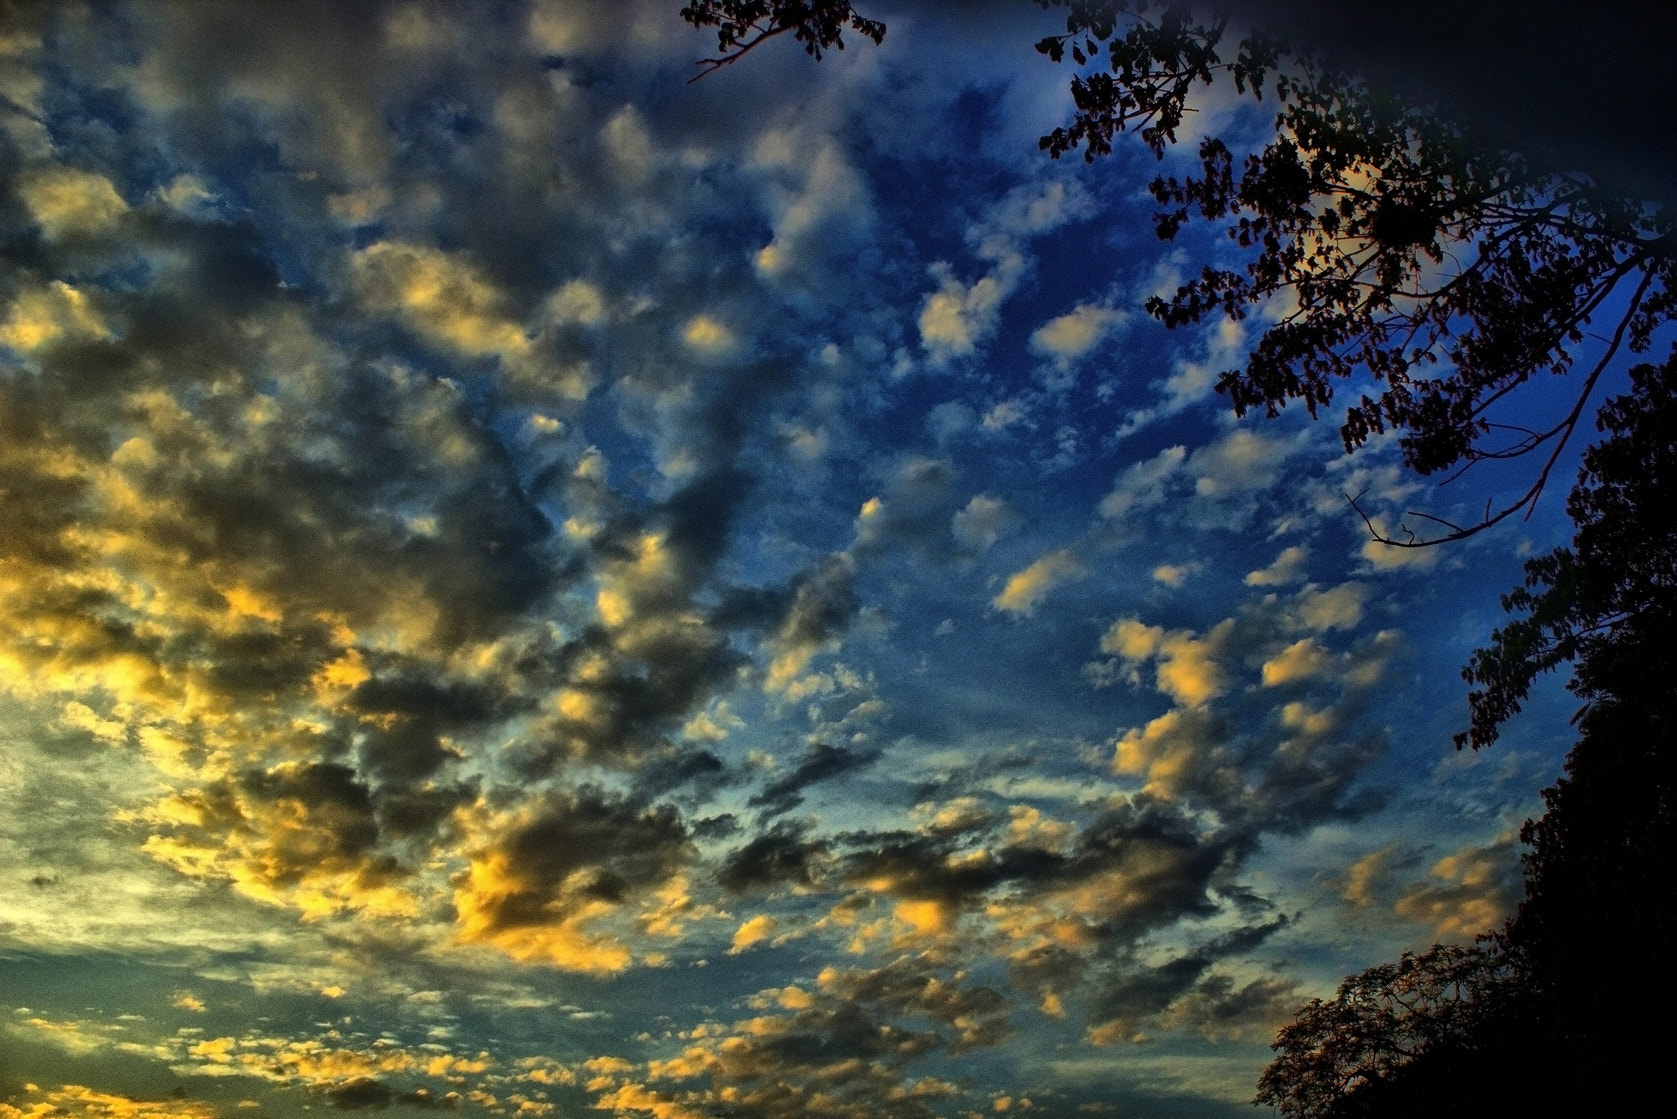 Photograph The dramatic sky... by Ananta Chowdhury on 500px